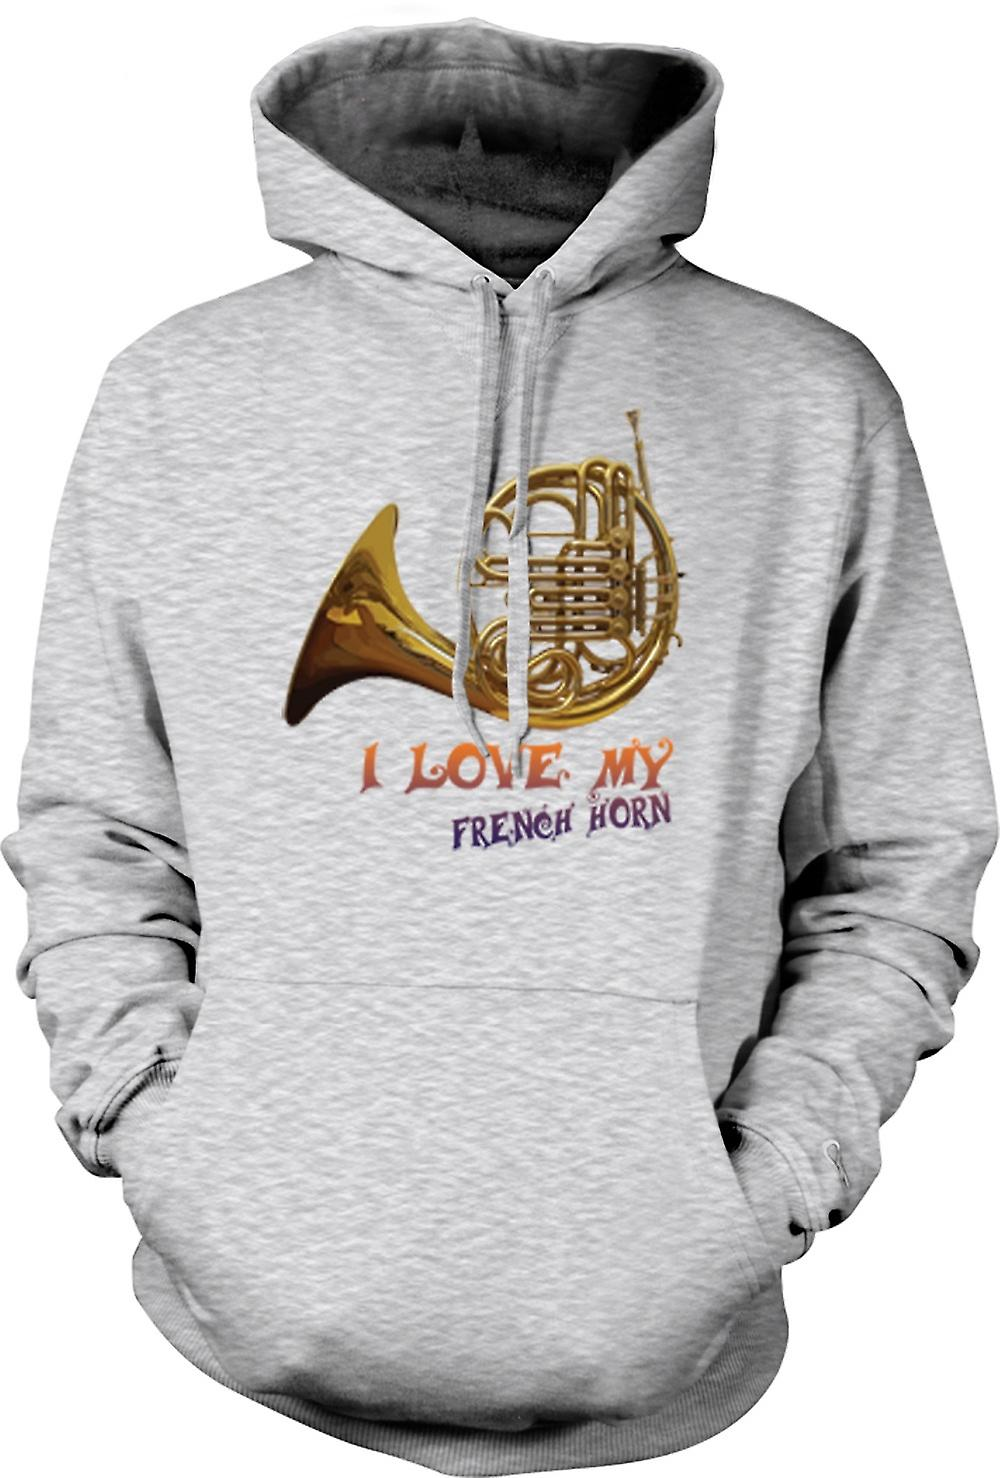 Mens Hoodie - I Love My French Horn